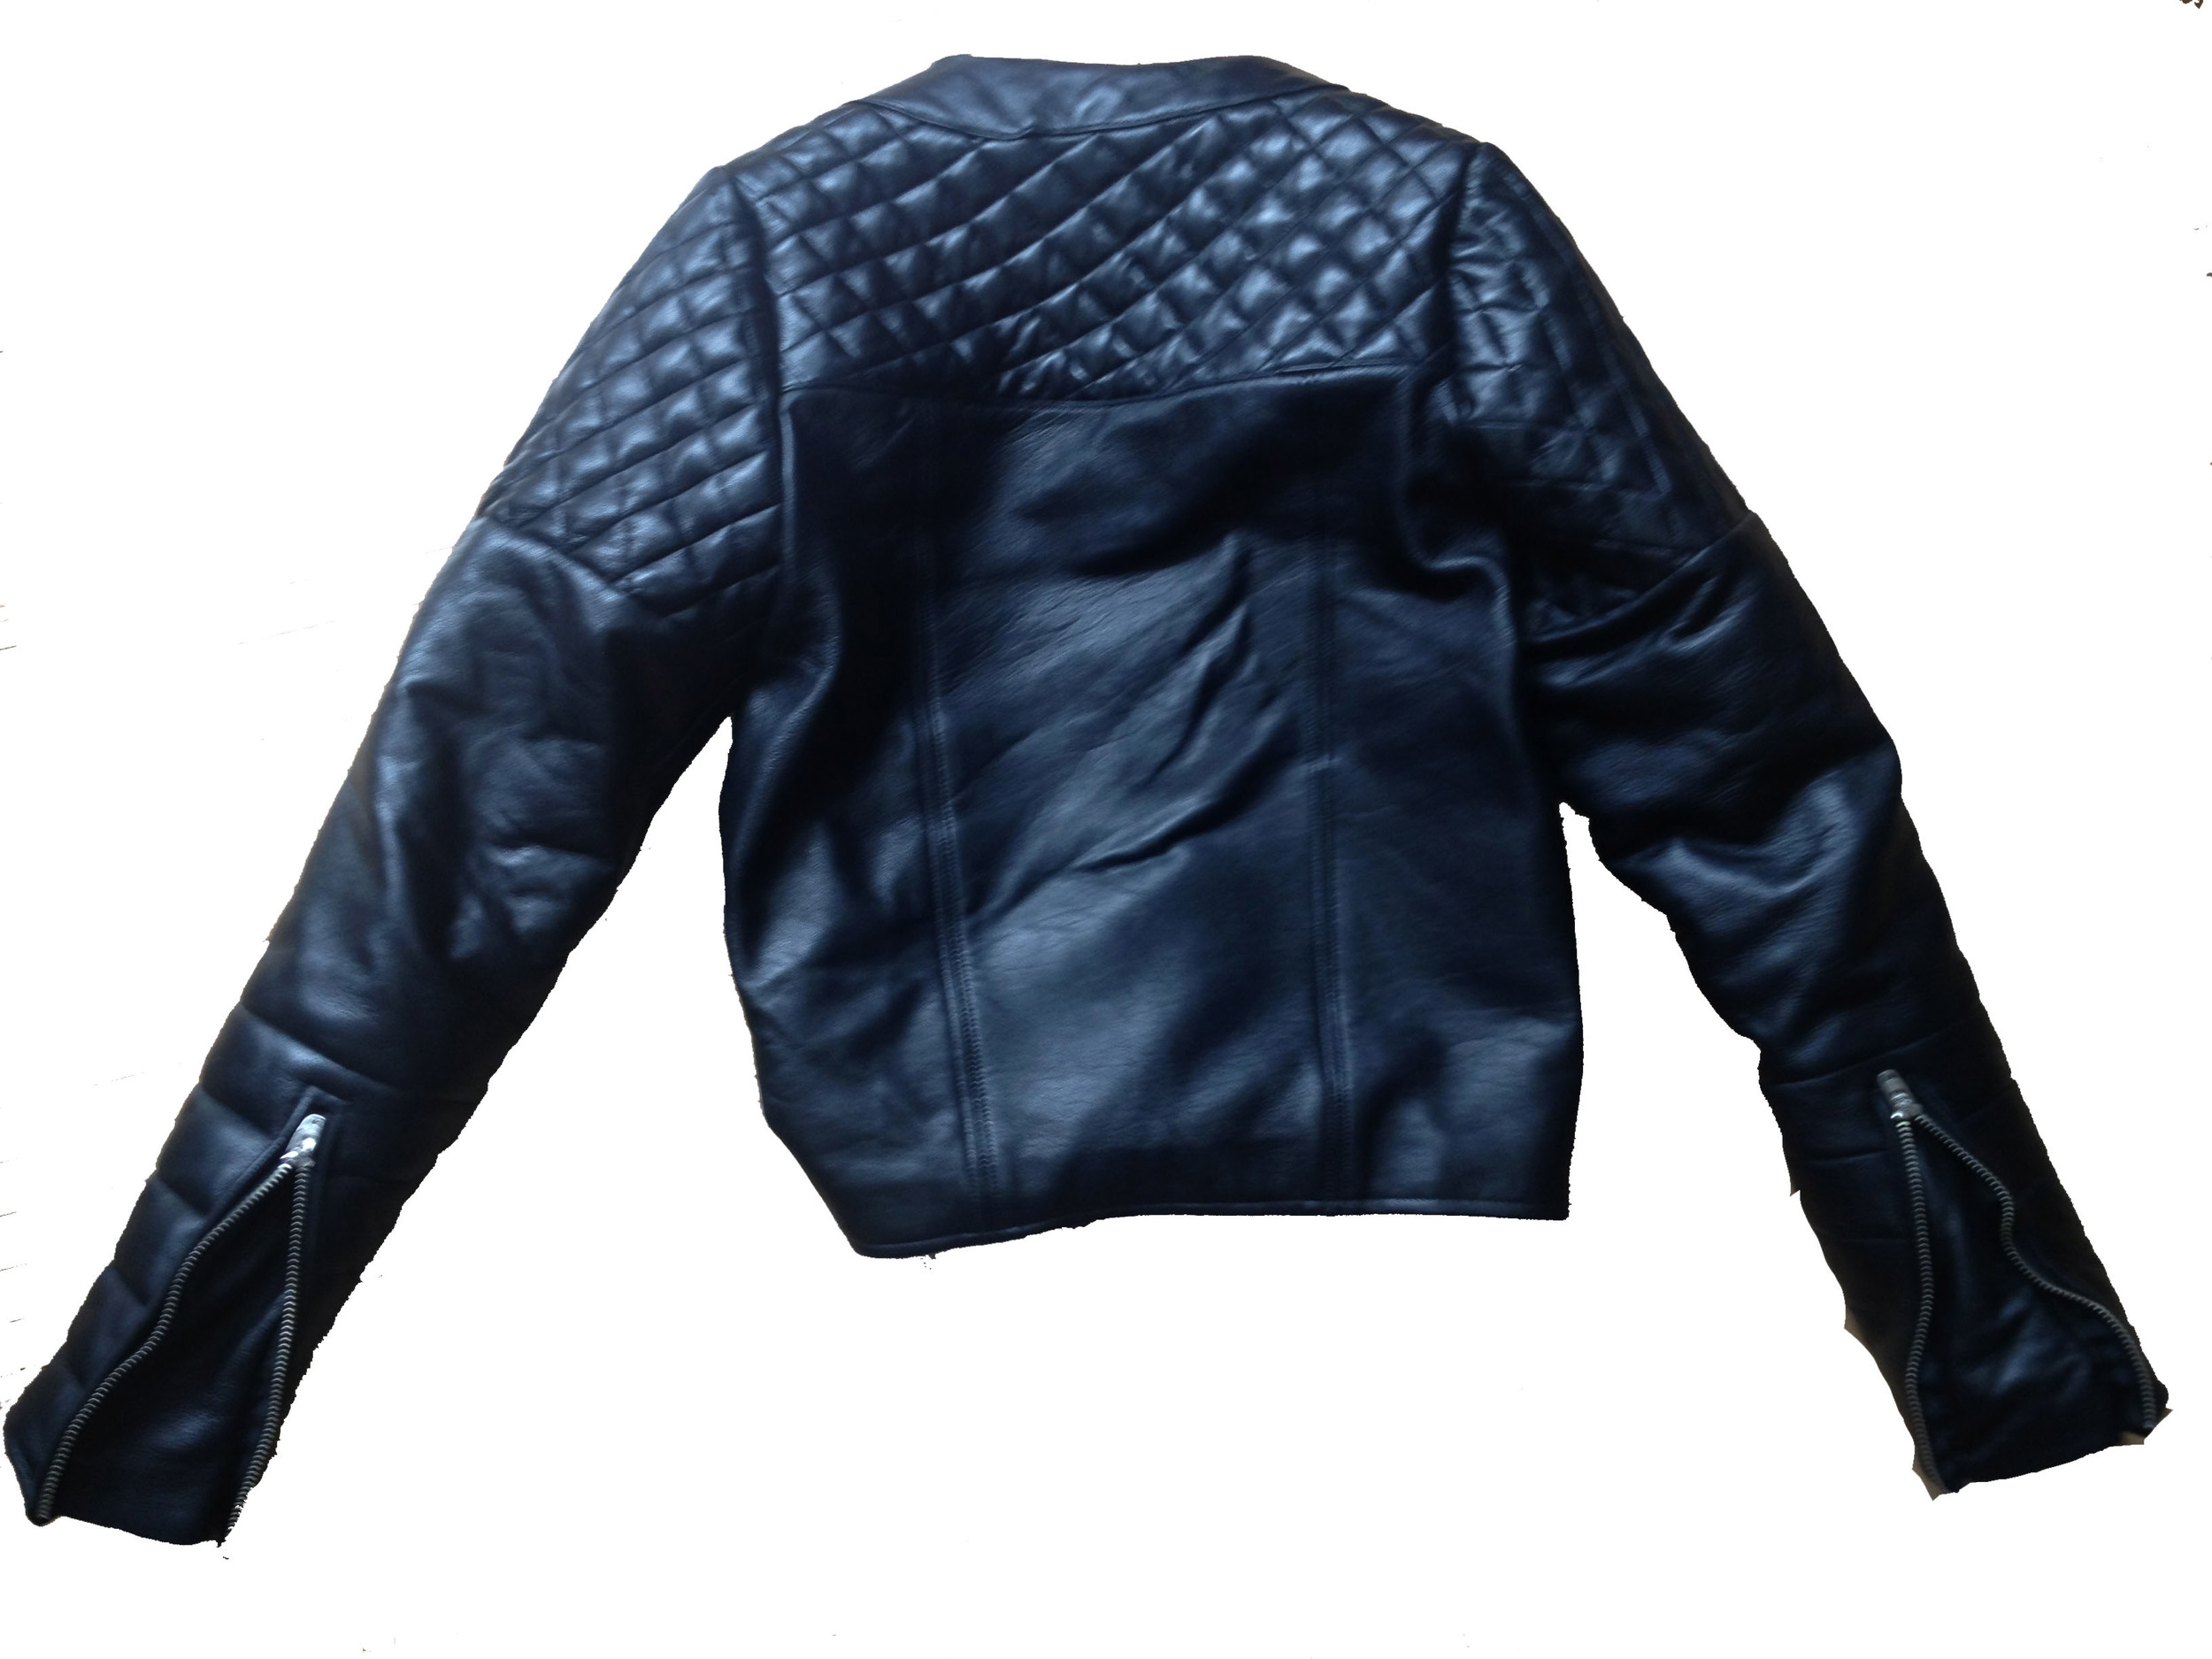 Leather Jacket Back View Lay Down.jpg